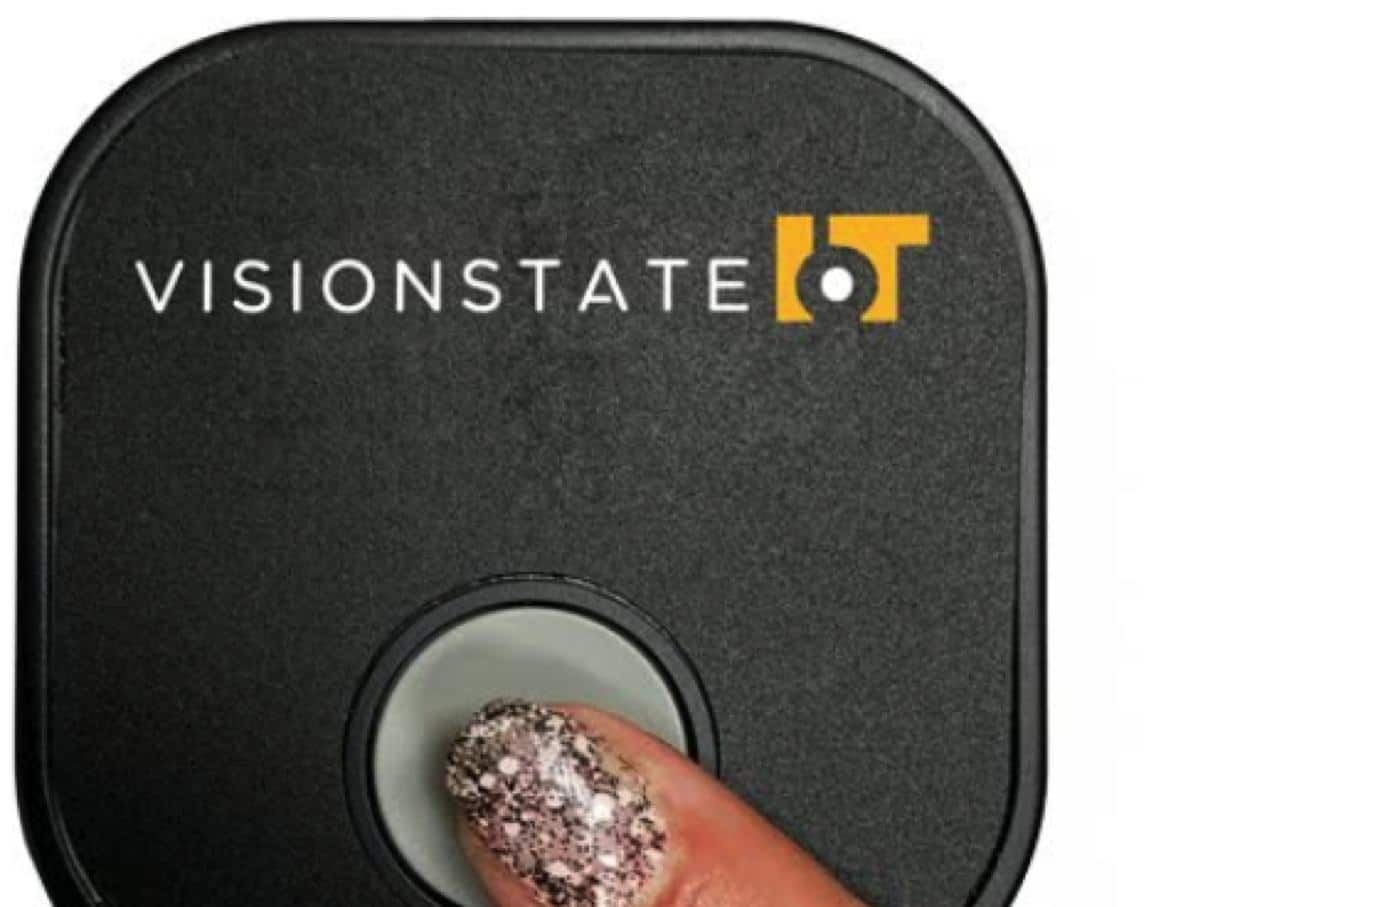 visionstate iot